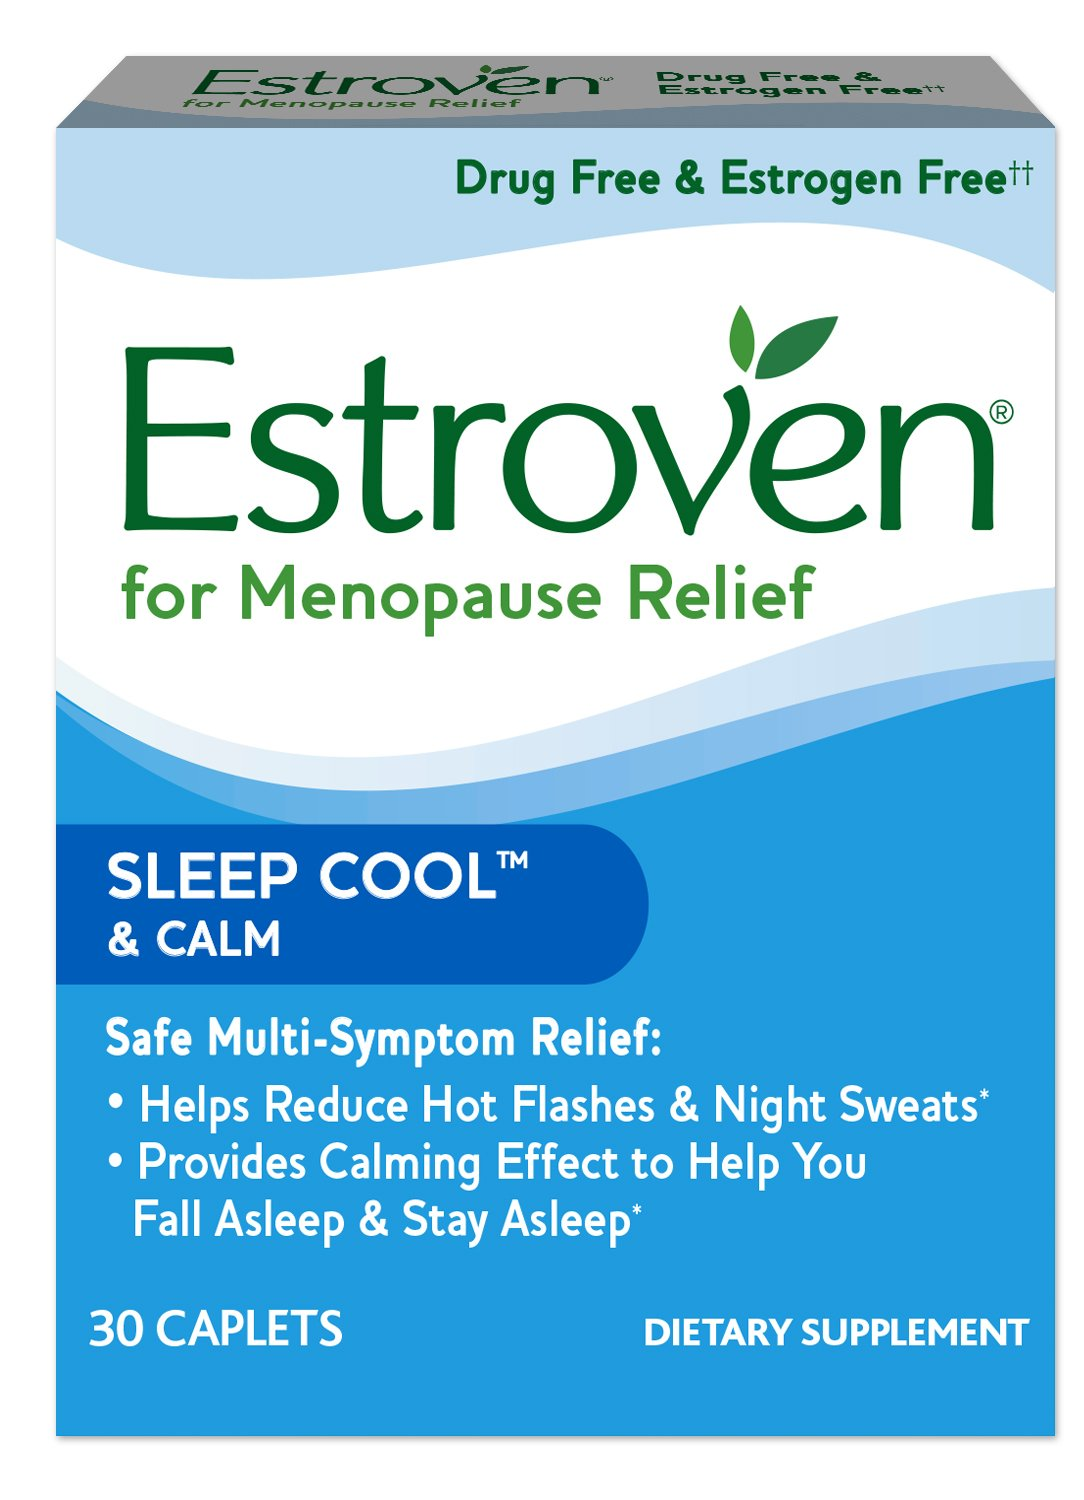 Estroven SLEEP COOL + CALM formulated for Menopause Symptom Relief* - Helps Reduce Hot Flashes and Night Sweats* - Provides Calming Effect to Help You Fall Sleep and Stay Asleep* - 30 Caplets